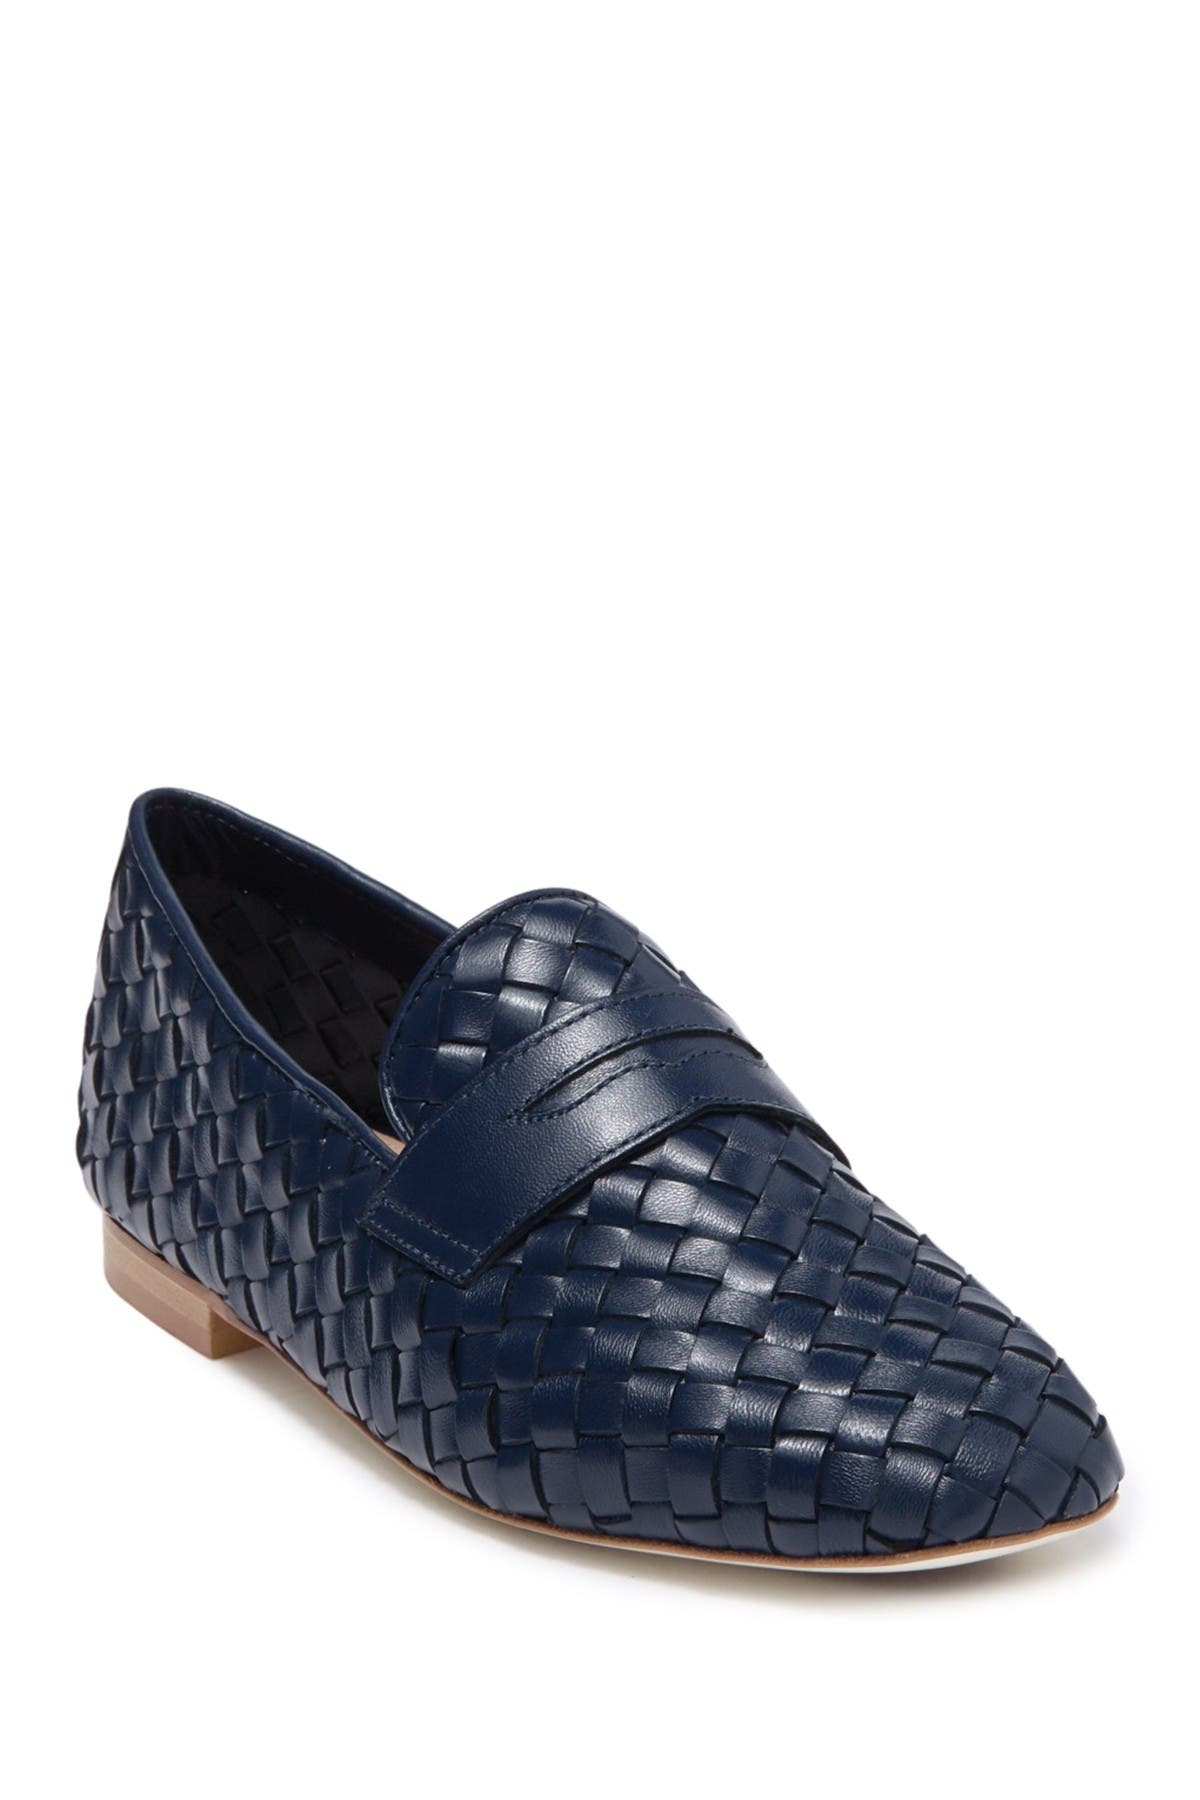 Image of RON WHITE Hand Woven Napa Leather Penny Slot Loafer